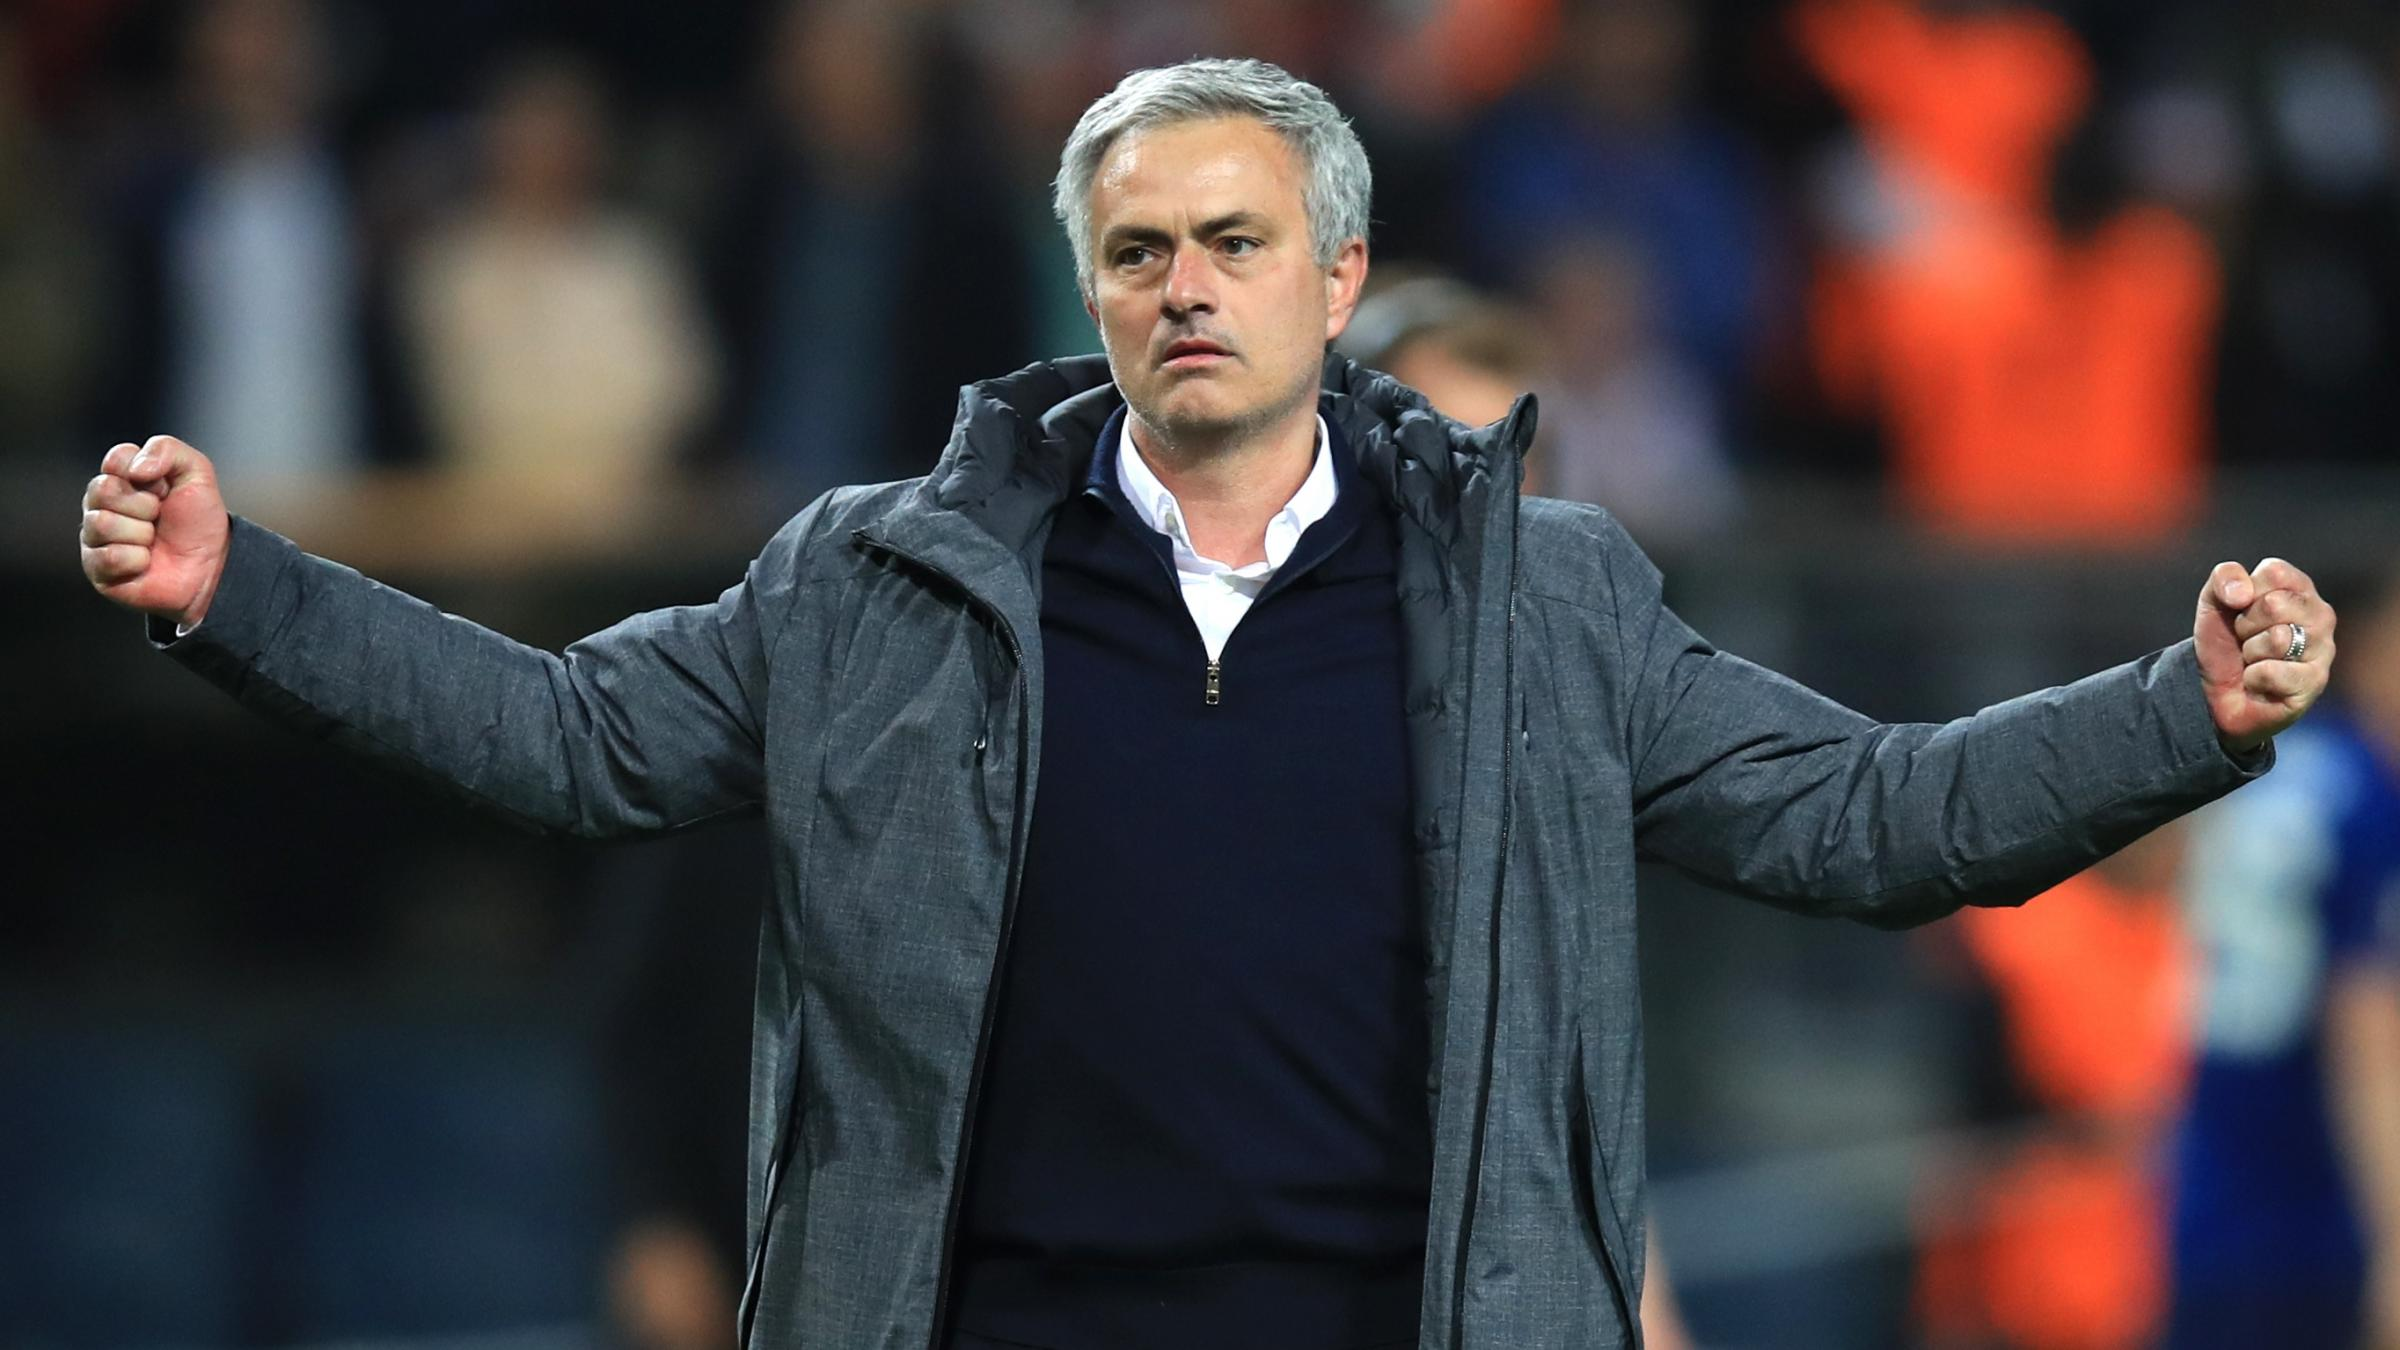 Jose Mourinho accused of tax fraud during time at Real Madrid